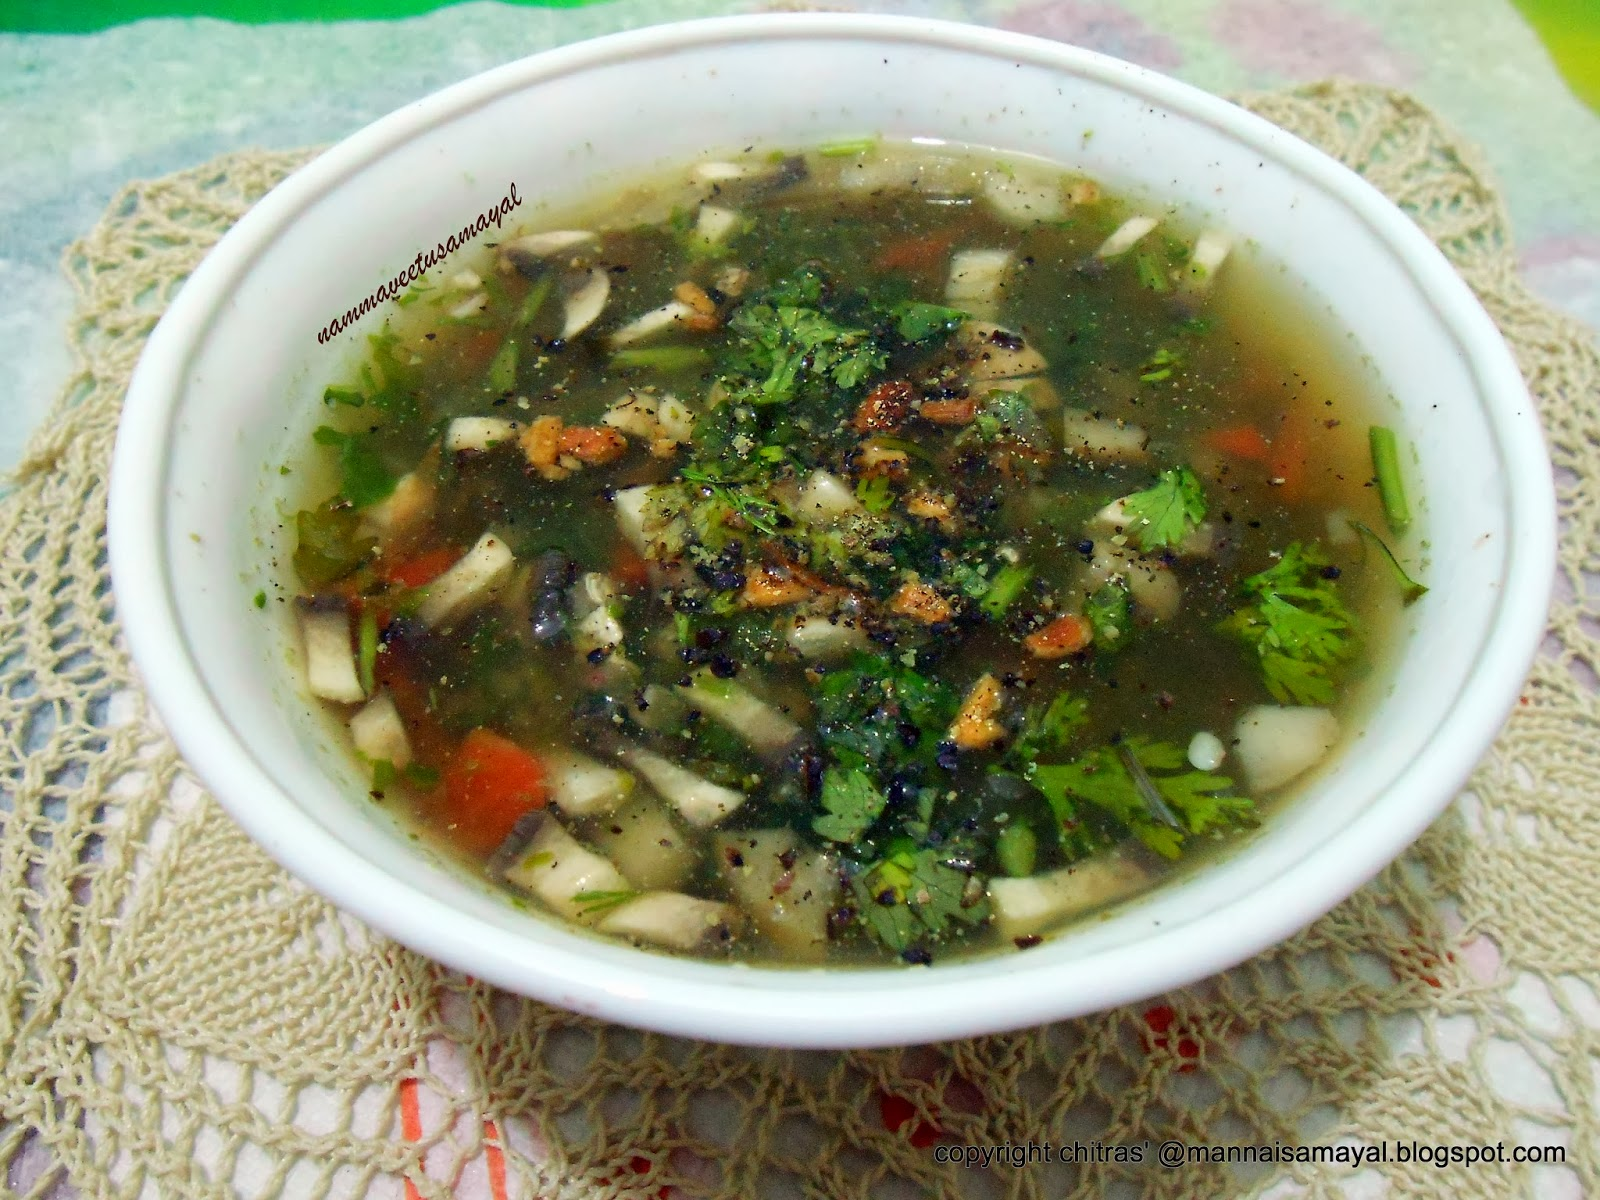 Buckwheat & Coriander seeds Soup